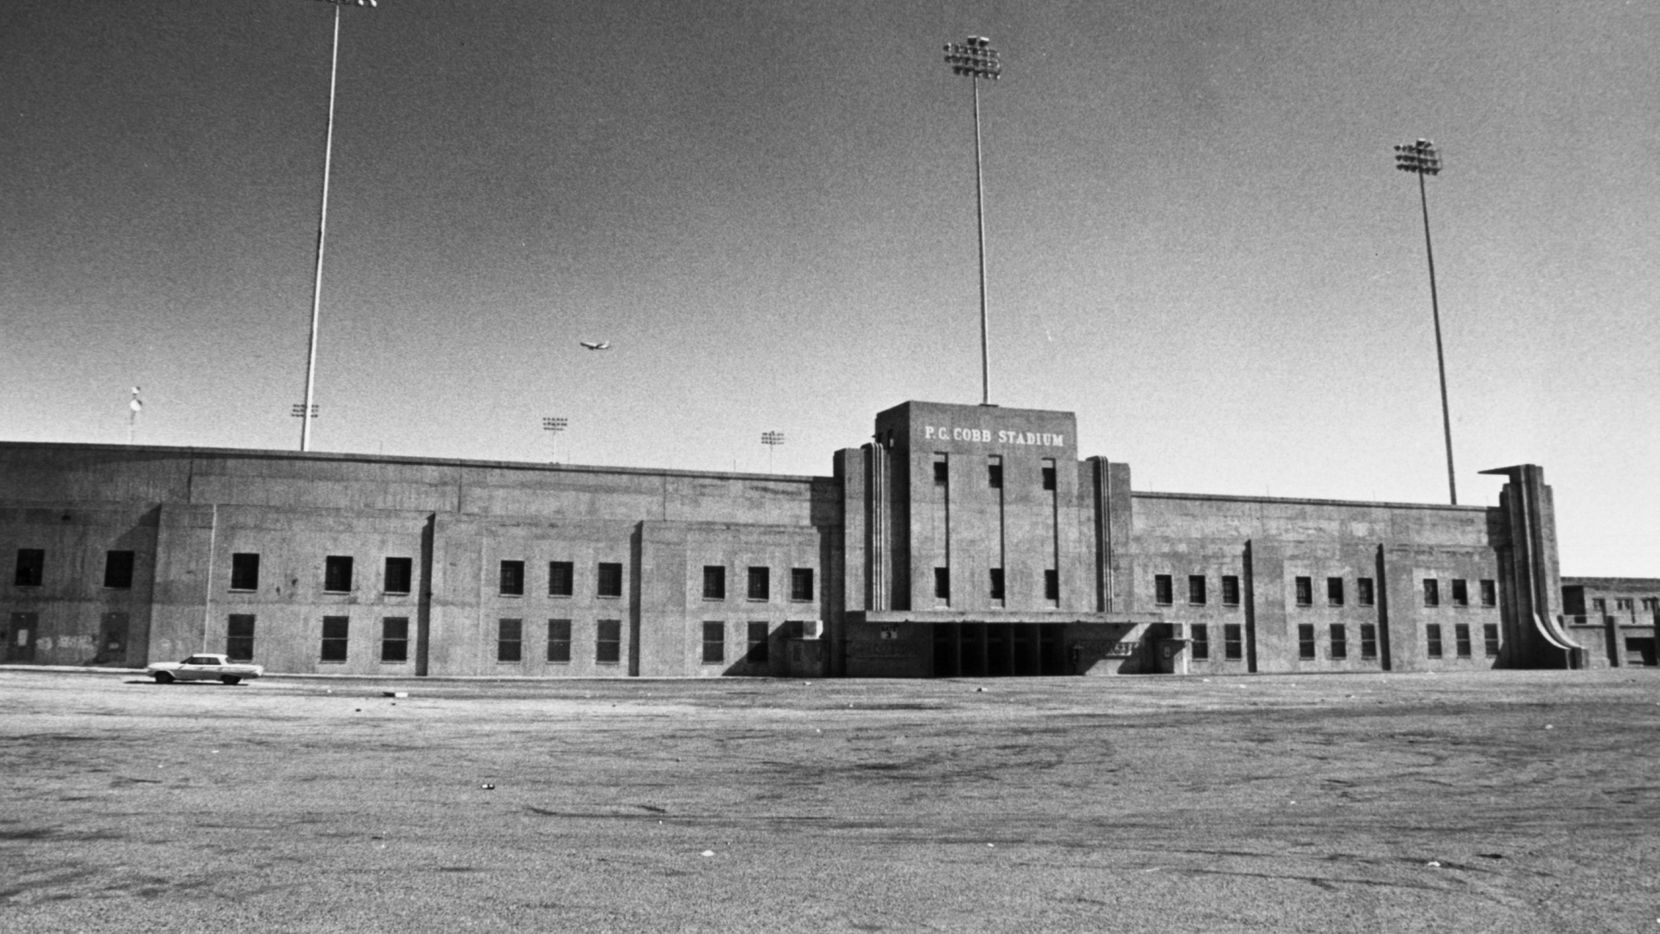 P.C. Cobb Stadium hosted high school football and even a professional team.